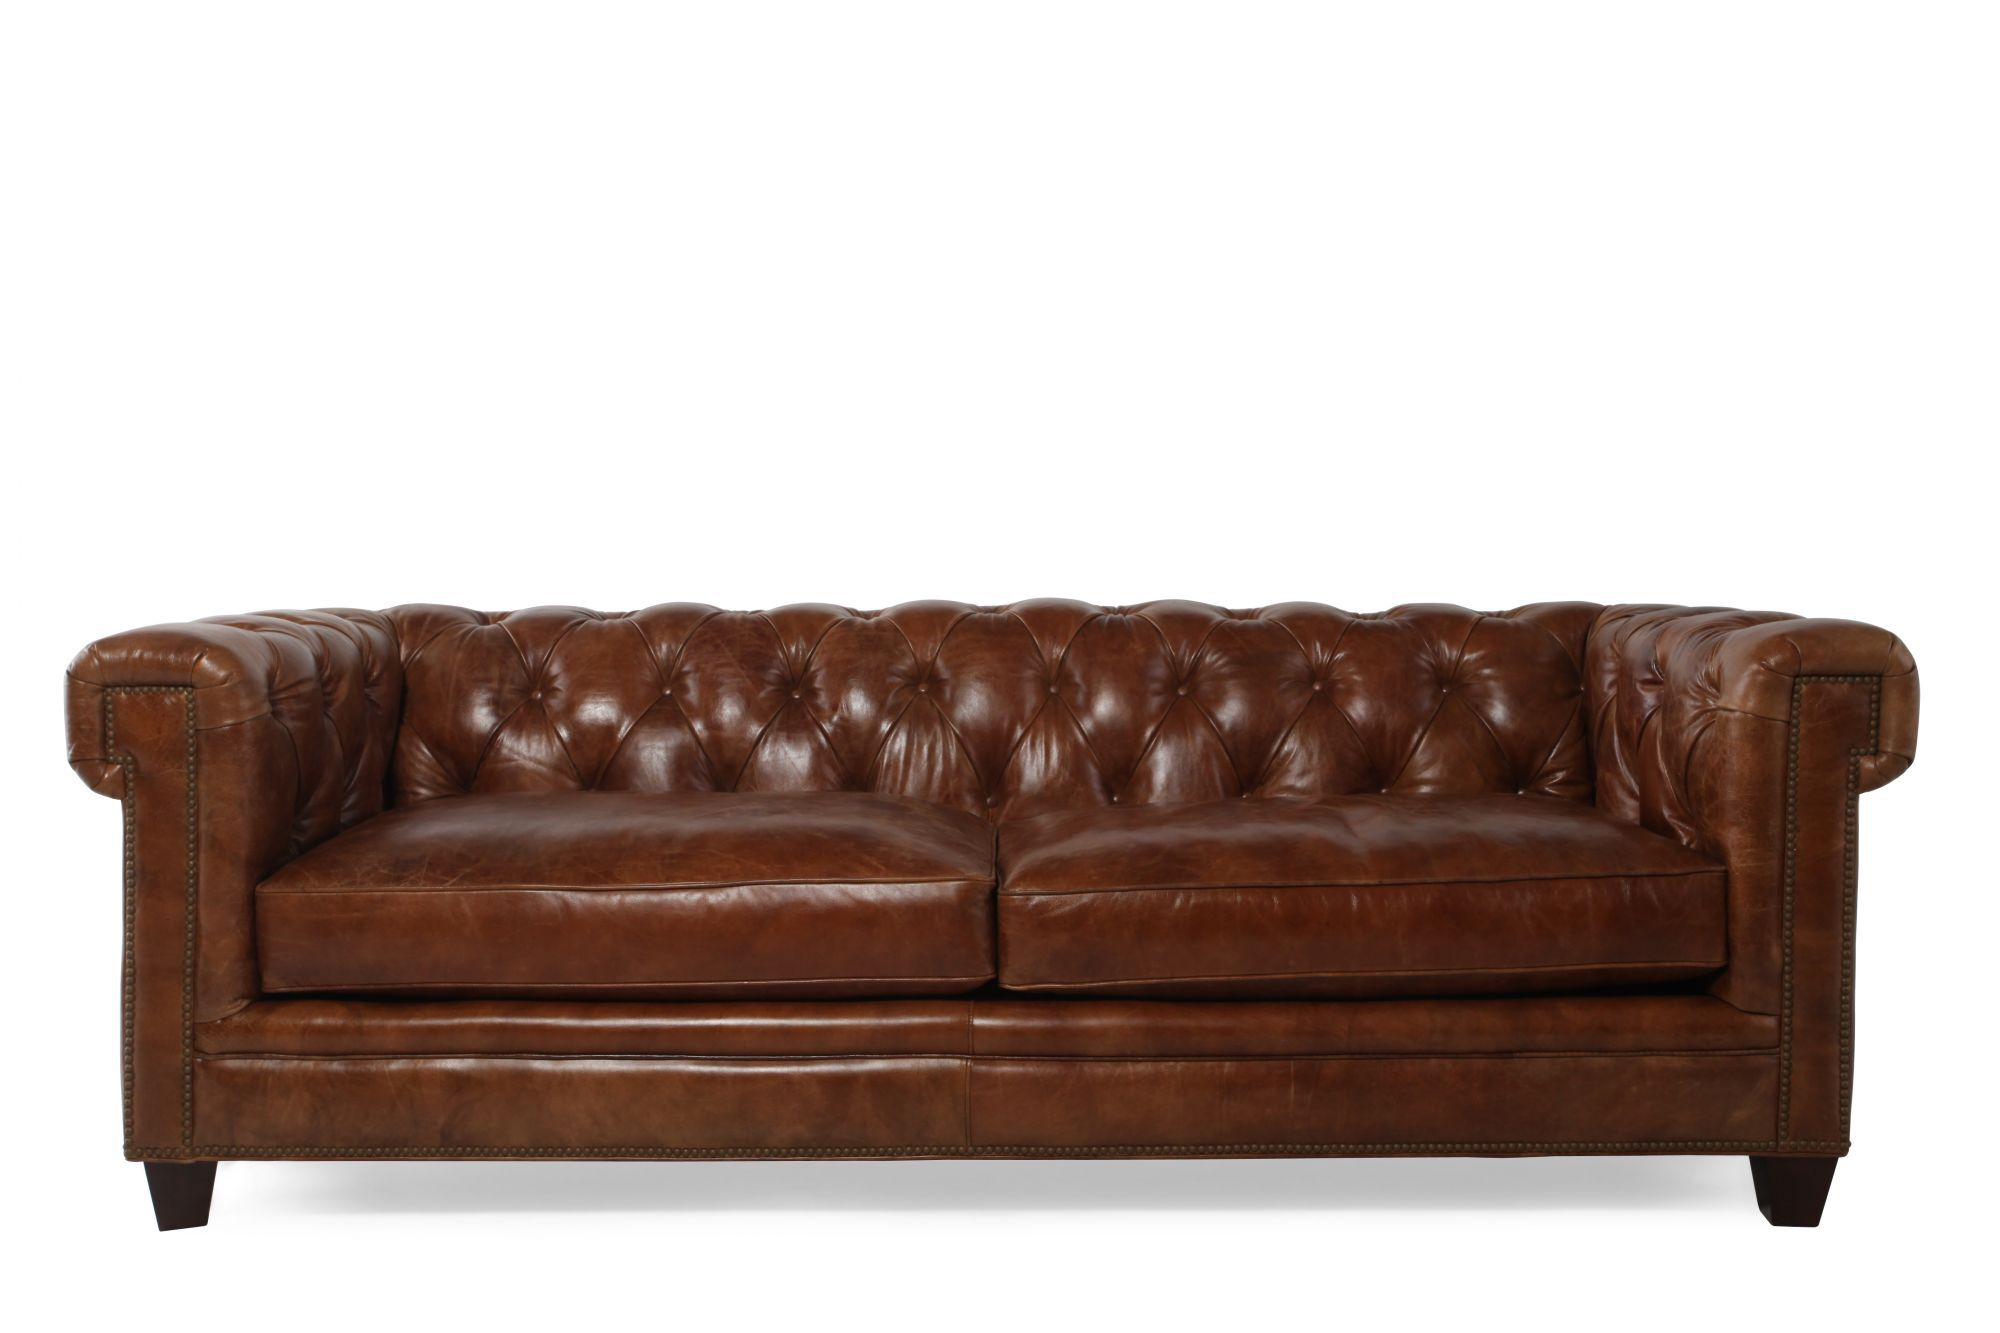 Button Tufted Leather 90u0026quot; Sofa In Saddle Brown Button Tufted Leather  90u0026quot; Sofa In Saddle Brown